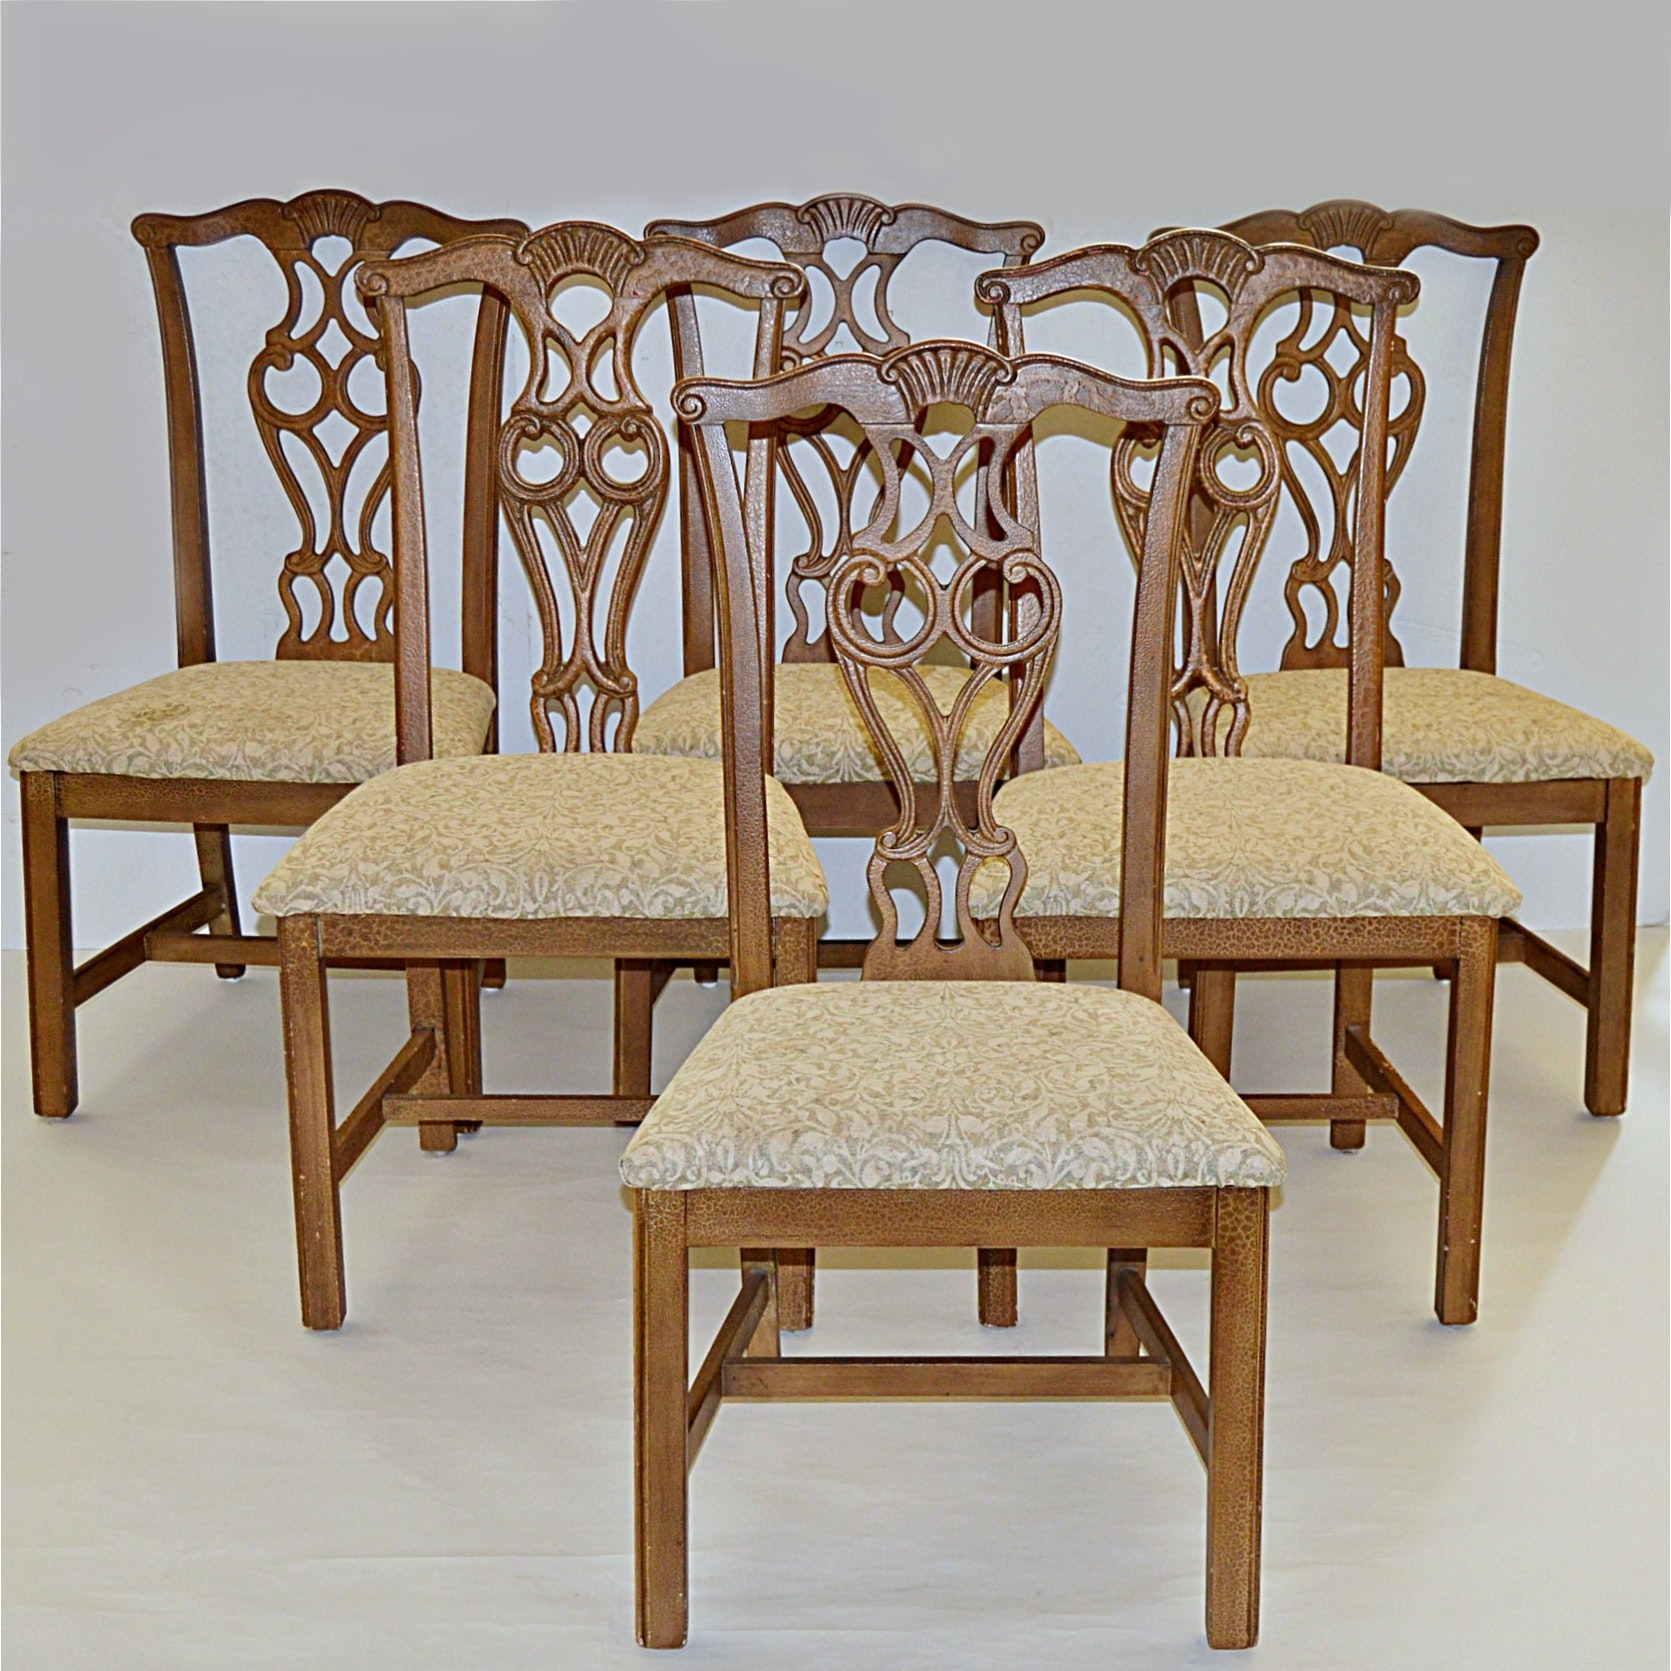 Set of Six Chippendale Style Chairs in an Aged Dark Cream Finish